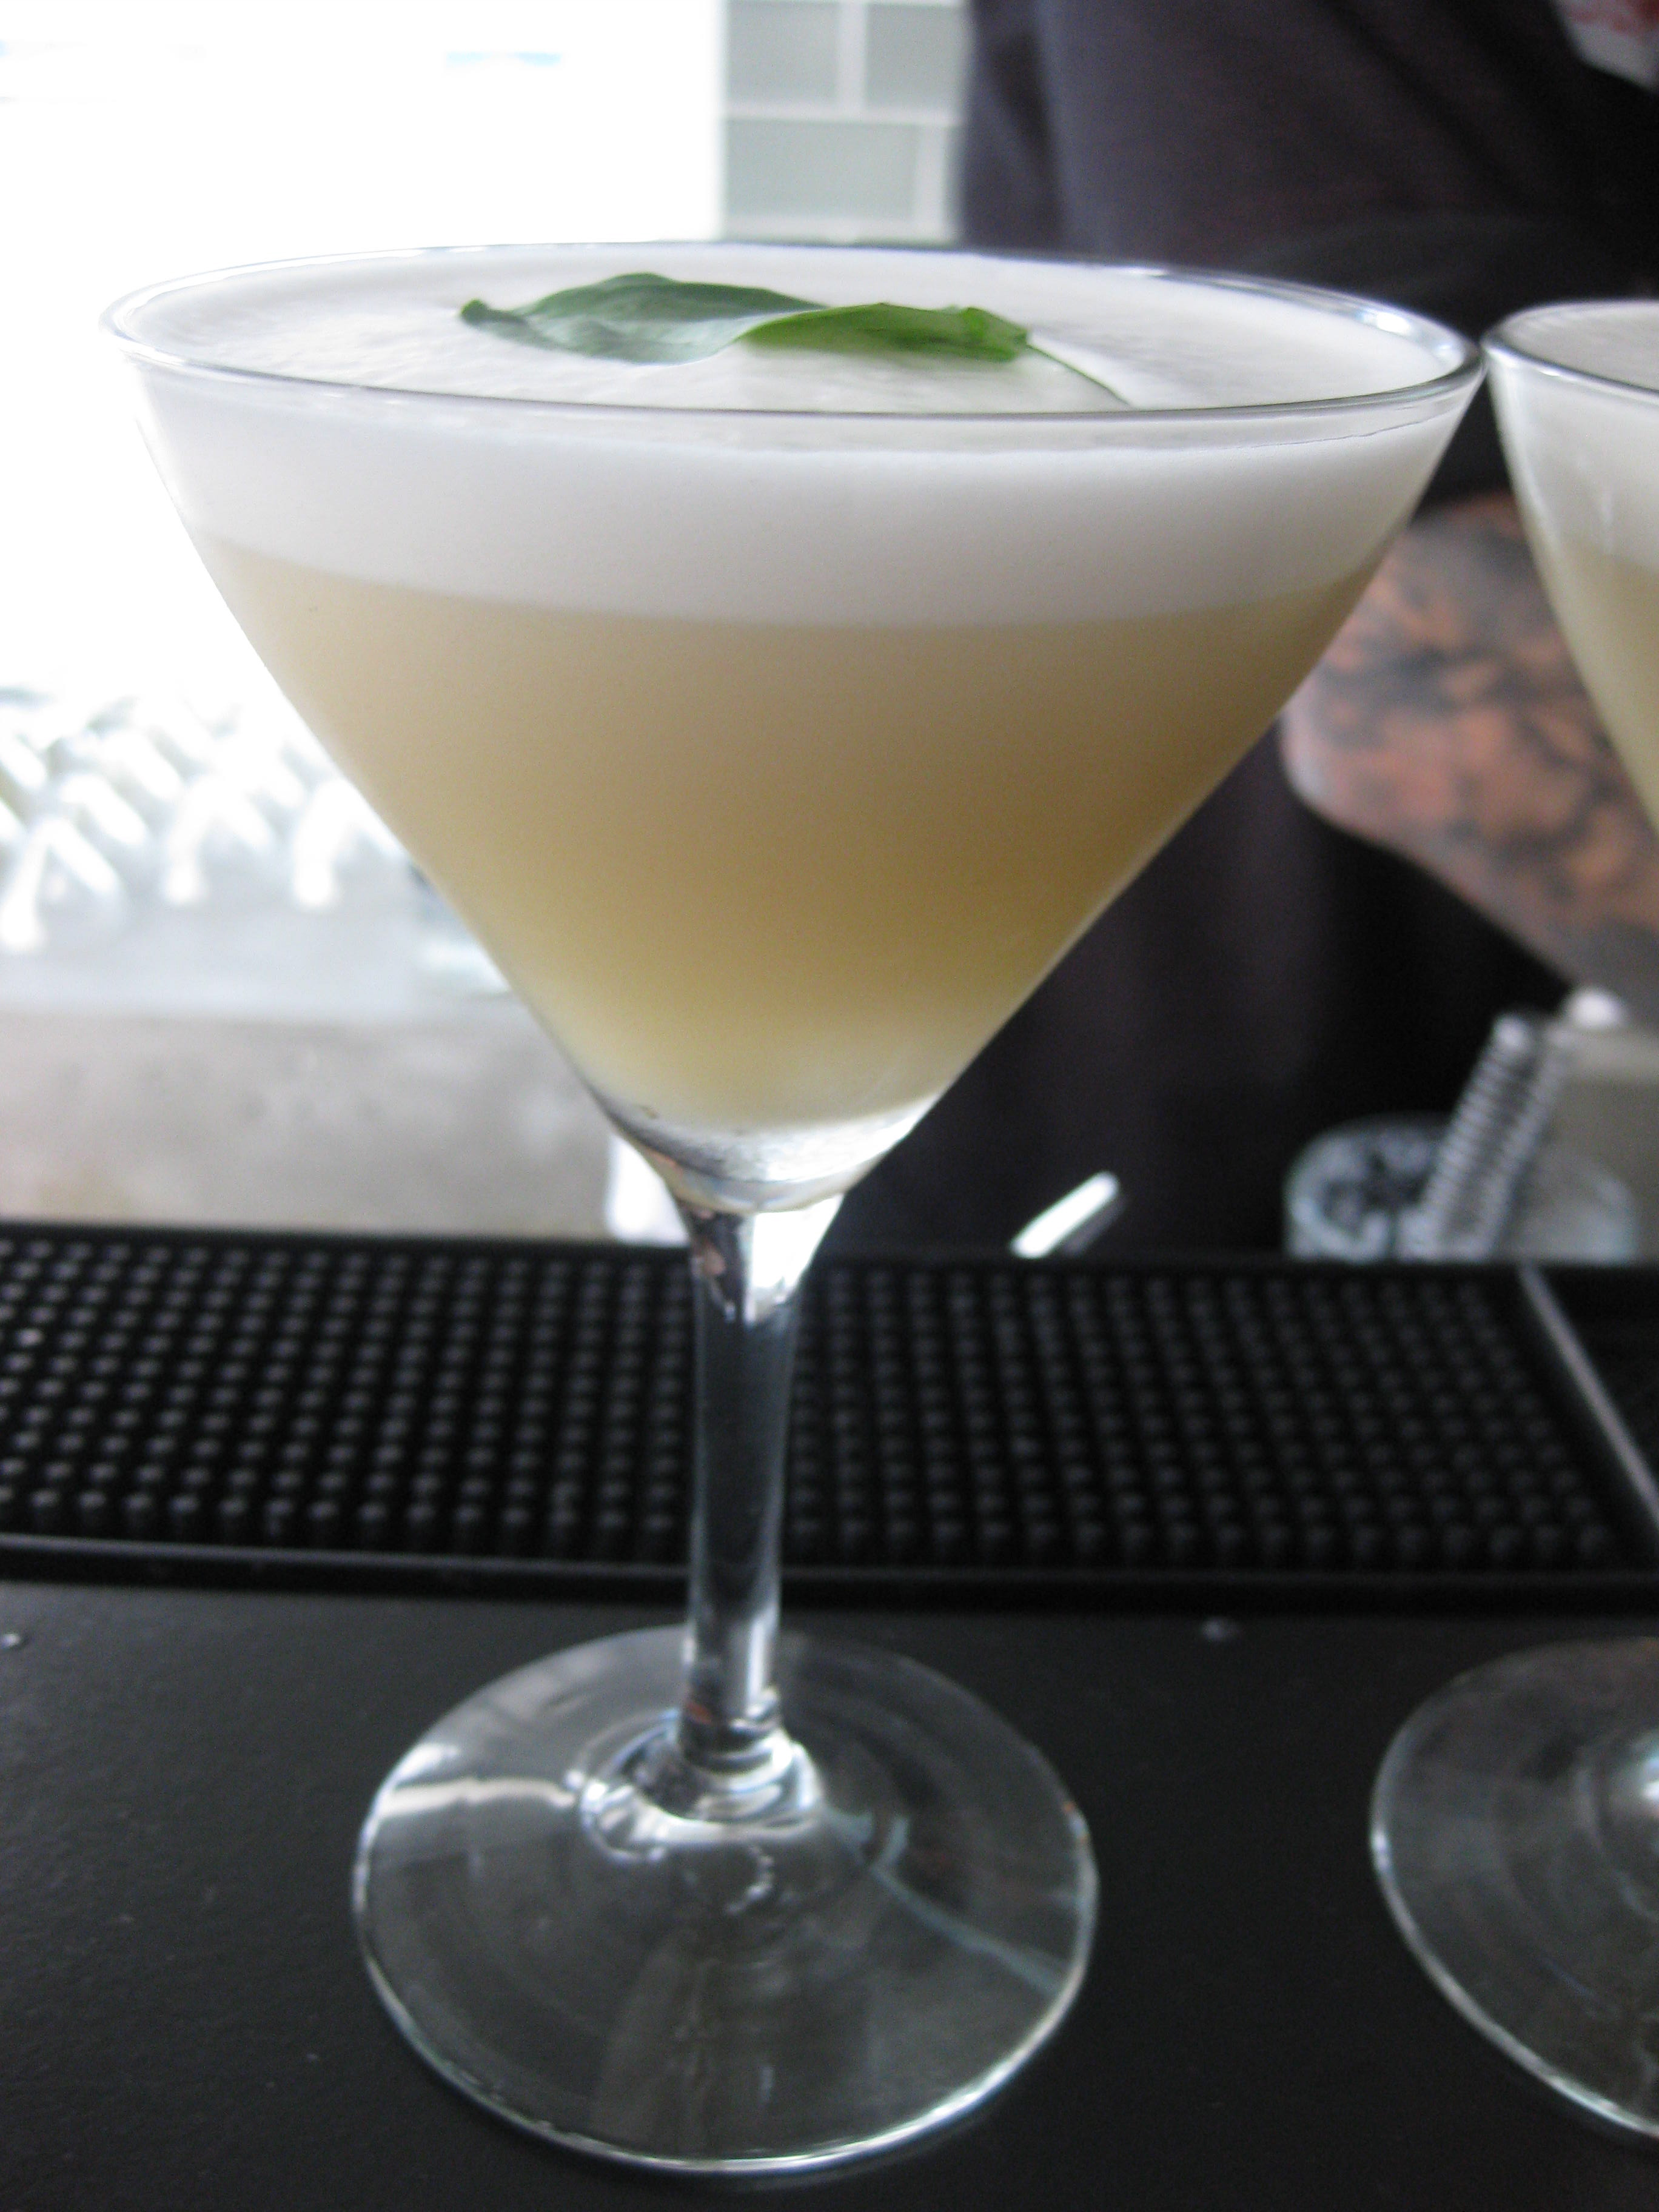 The first cocktail featured basil and egg whites.